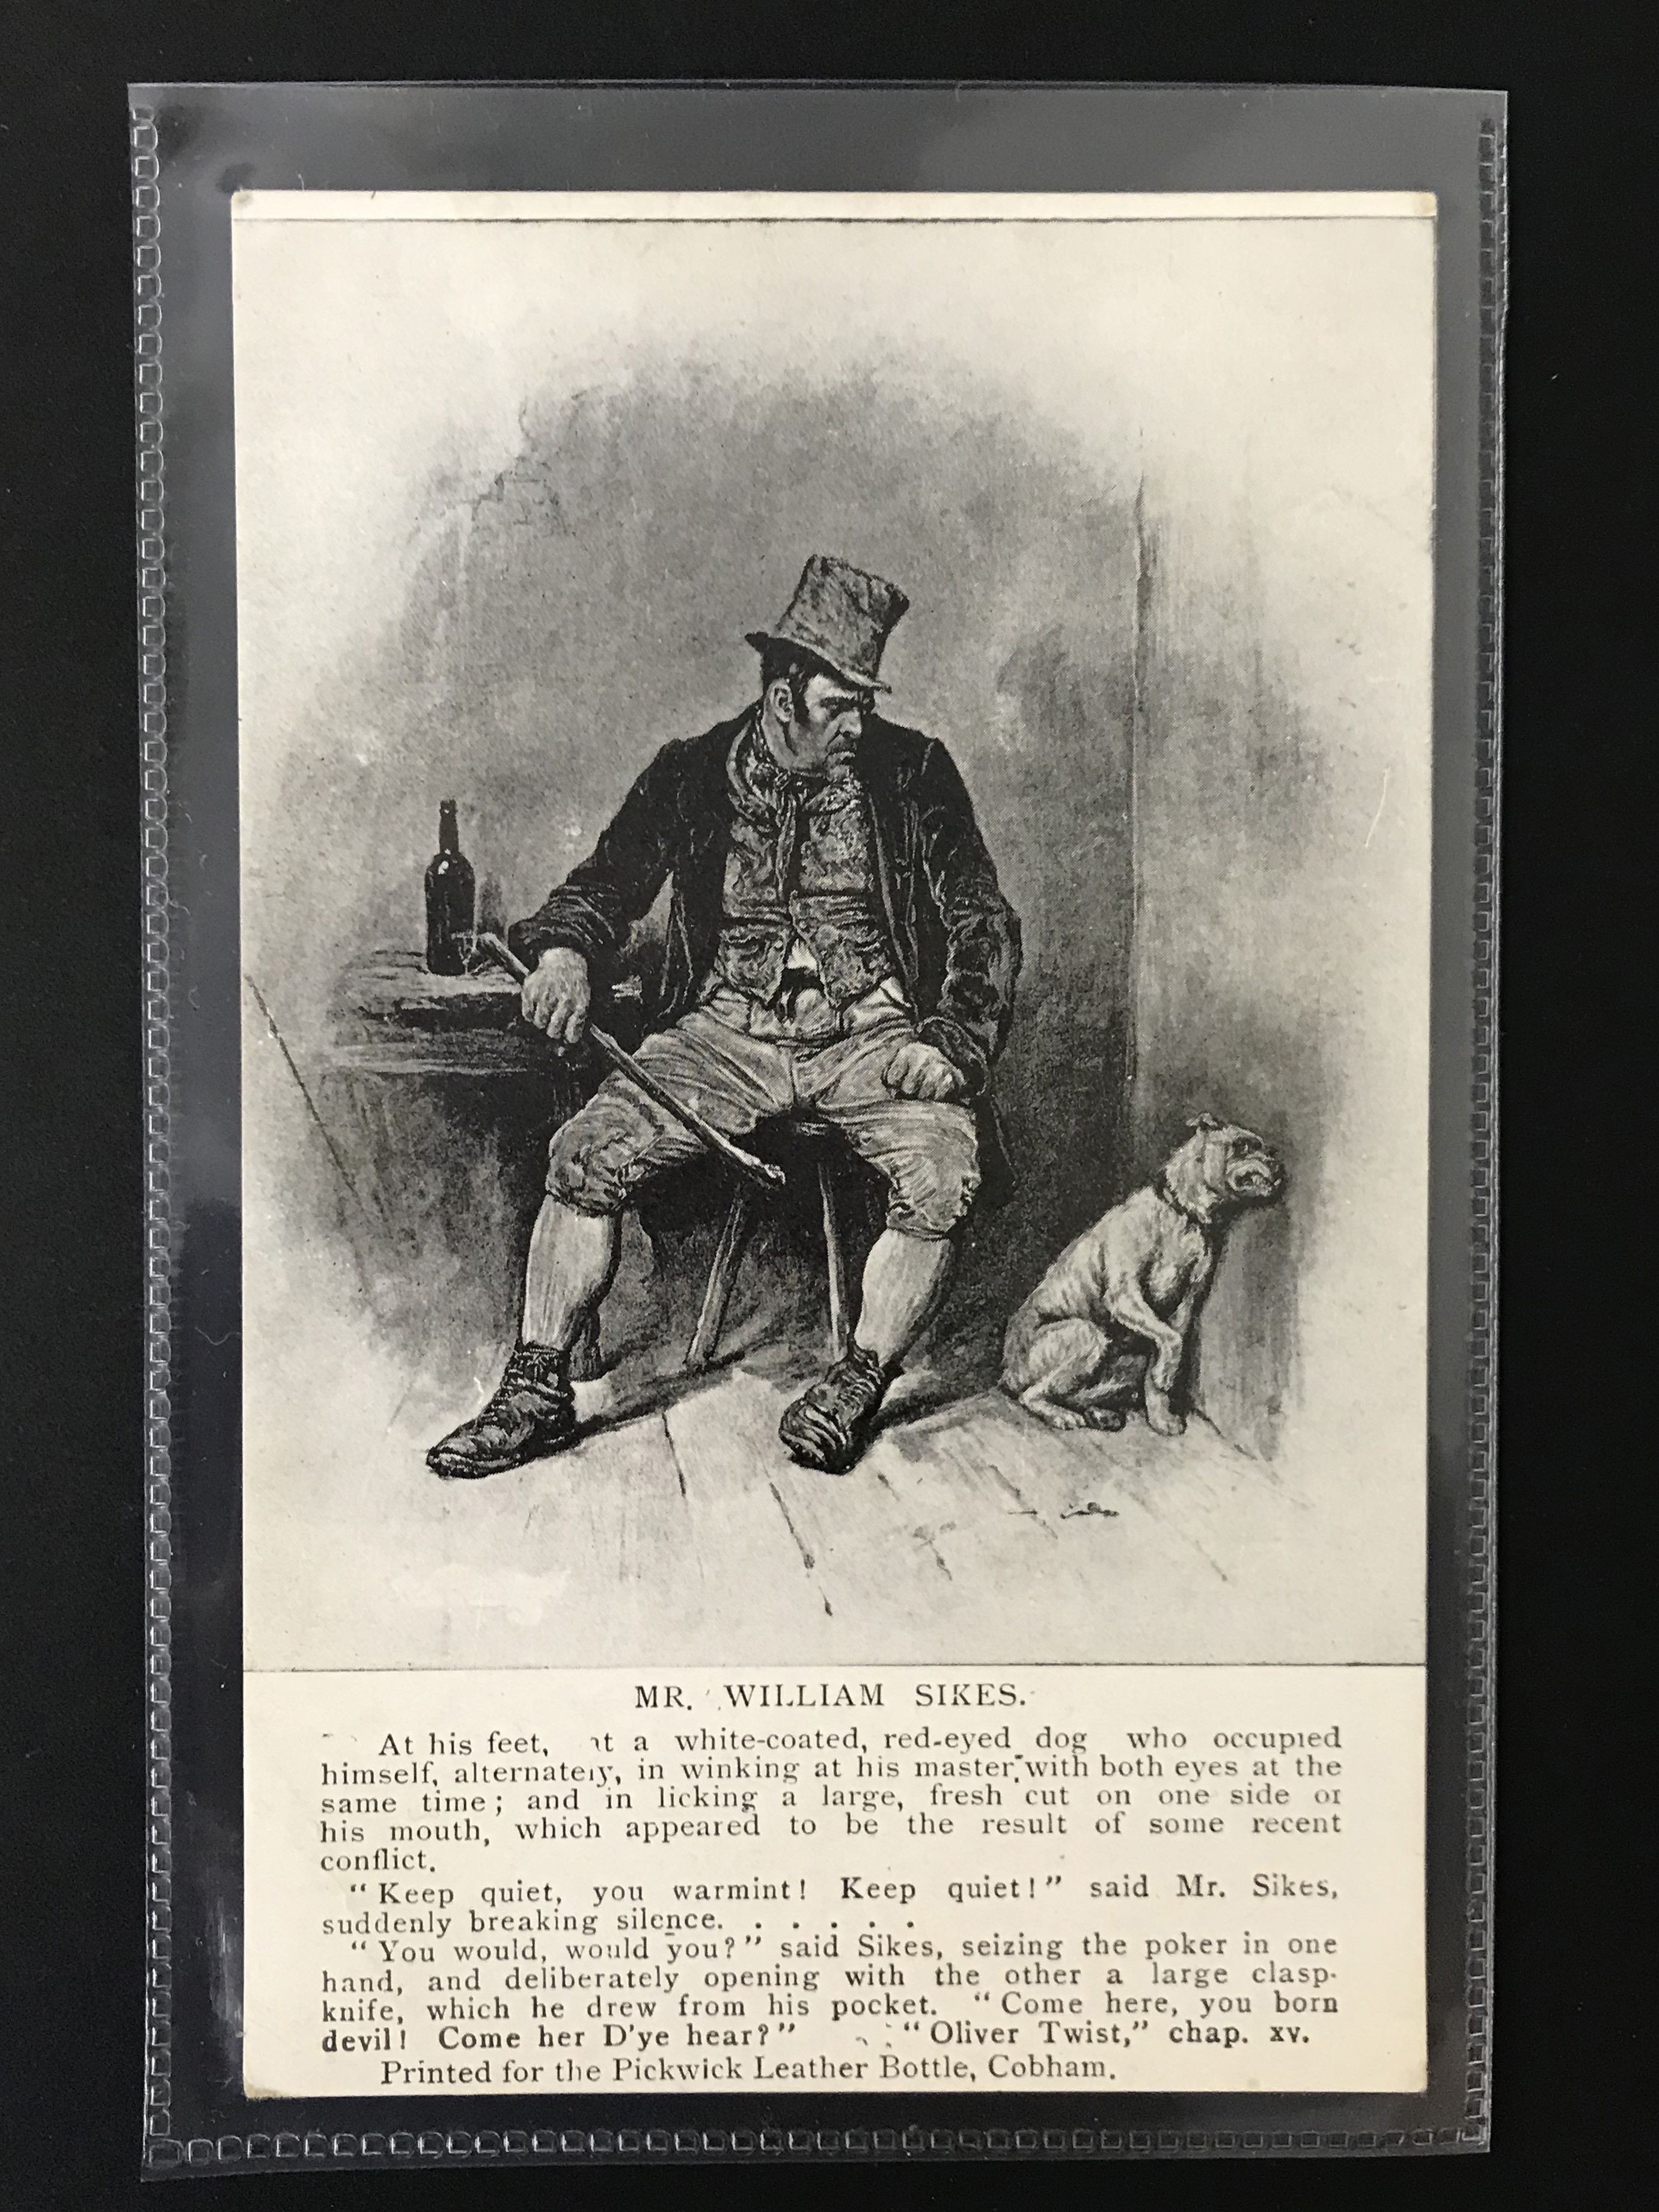 GROUP OF SEVEN DICKENS RELATED POSTCARDSPRINTED FOR THE PICKWICK LEATHER BOTTLE COMPANY - Image 5 of 6